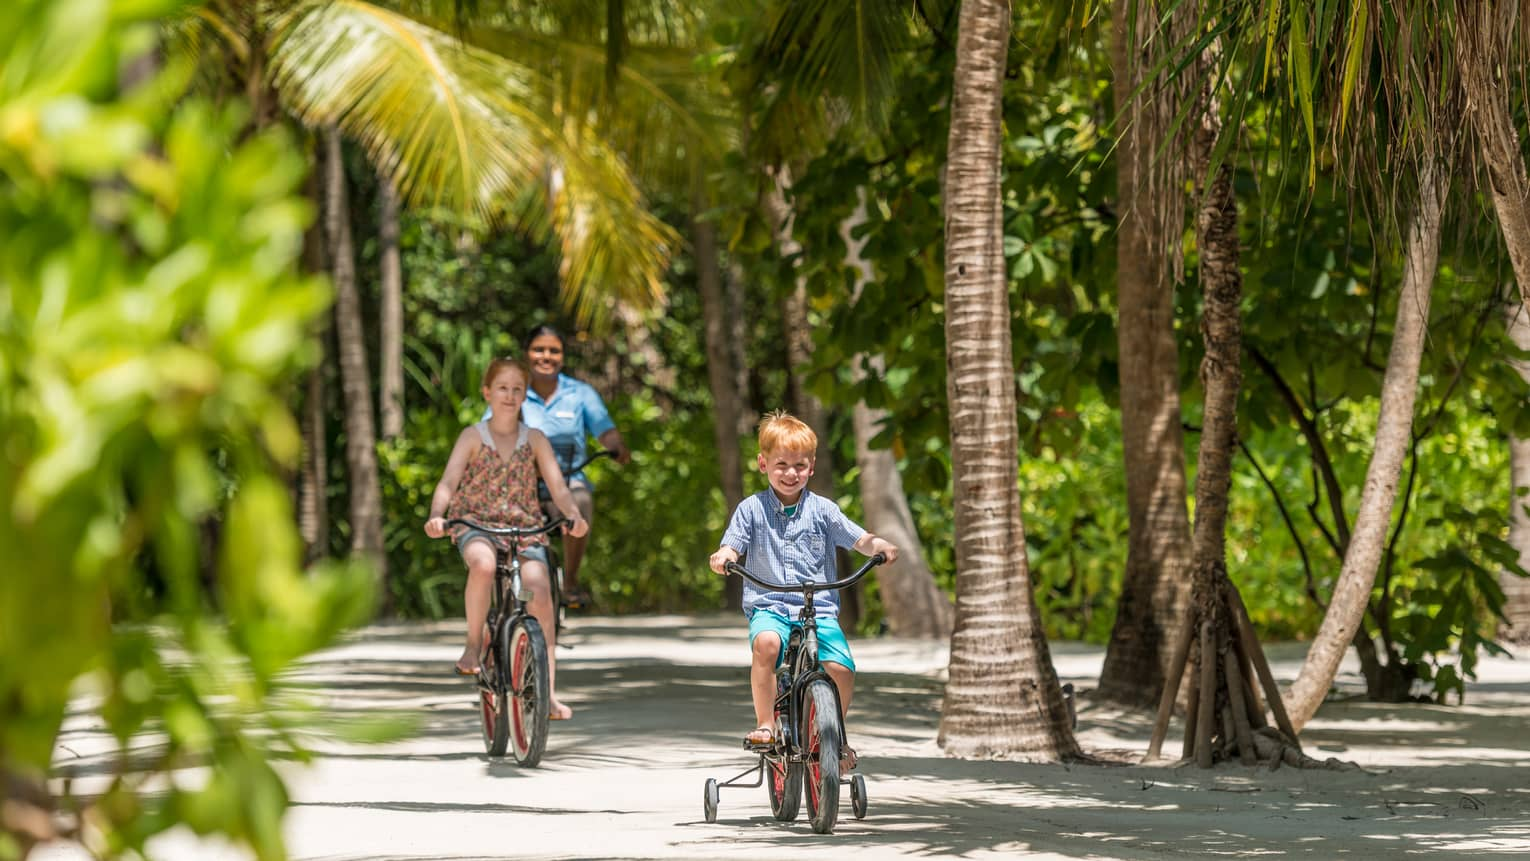 Young boy rides tricycle as older girl, hotel staff ride bicycles on forest path behind him